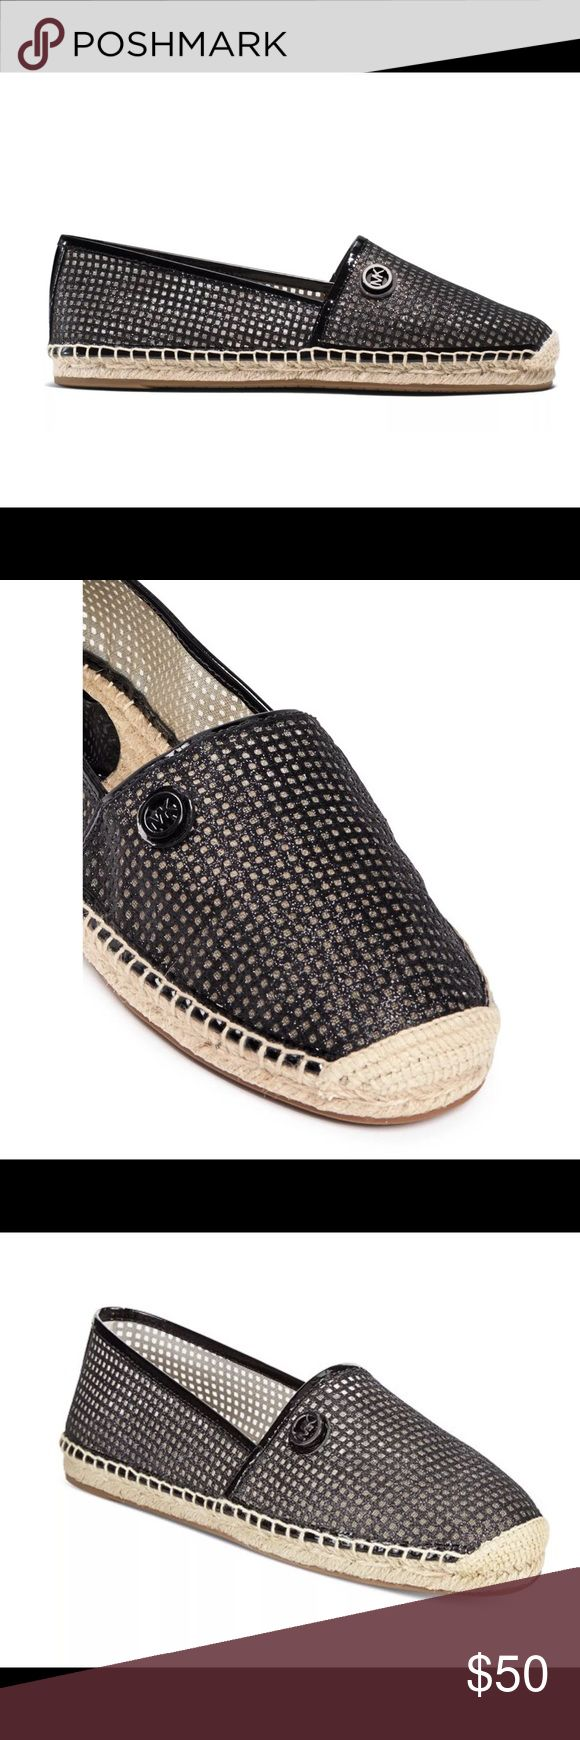 Michael Kors Kendrick Glitter Espadrilles Michael Kors Glitter Espadrilles in Black - New -box not included.  Round closed toe flats - mesh upper - rubber sole. Perfect for spring and summer! Michael Kors Shoes Espadrilles